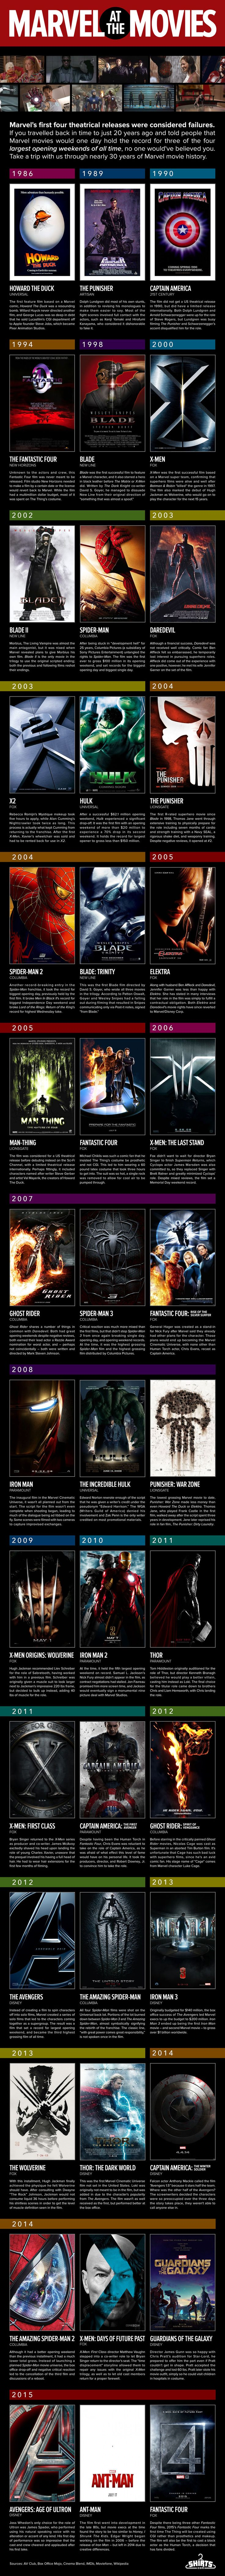 Marvel Movie History Infographic - spanning almost 30 years.  Their first four movie's were considered failures. George Lucas was so deep in debt after Howard The Duck bombed, that he had to sell off Lucasfilm's CGI department to Apple founder Steve Jobs ... which became Pixar Studios.